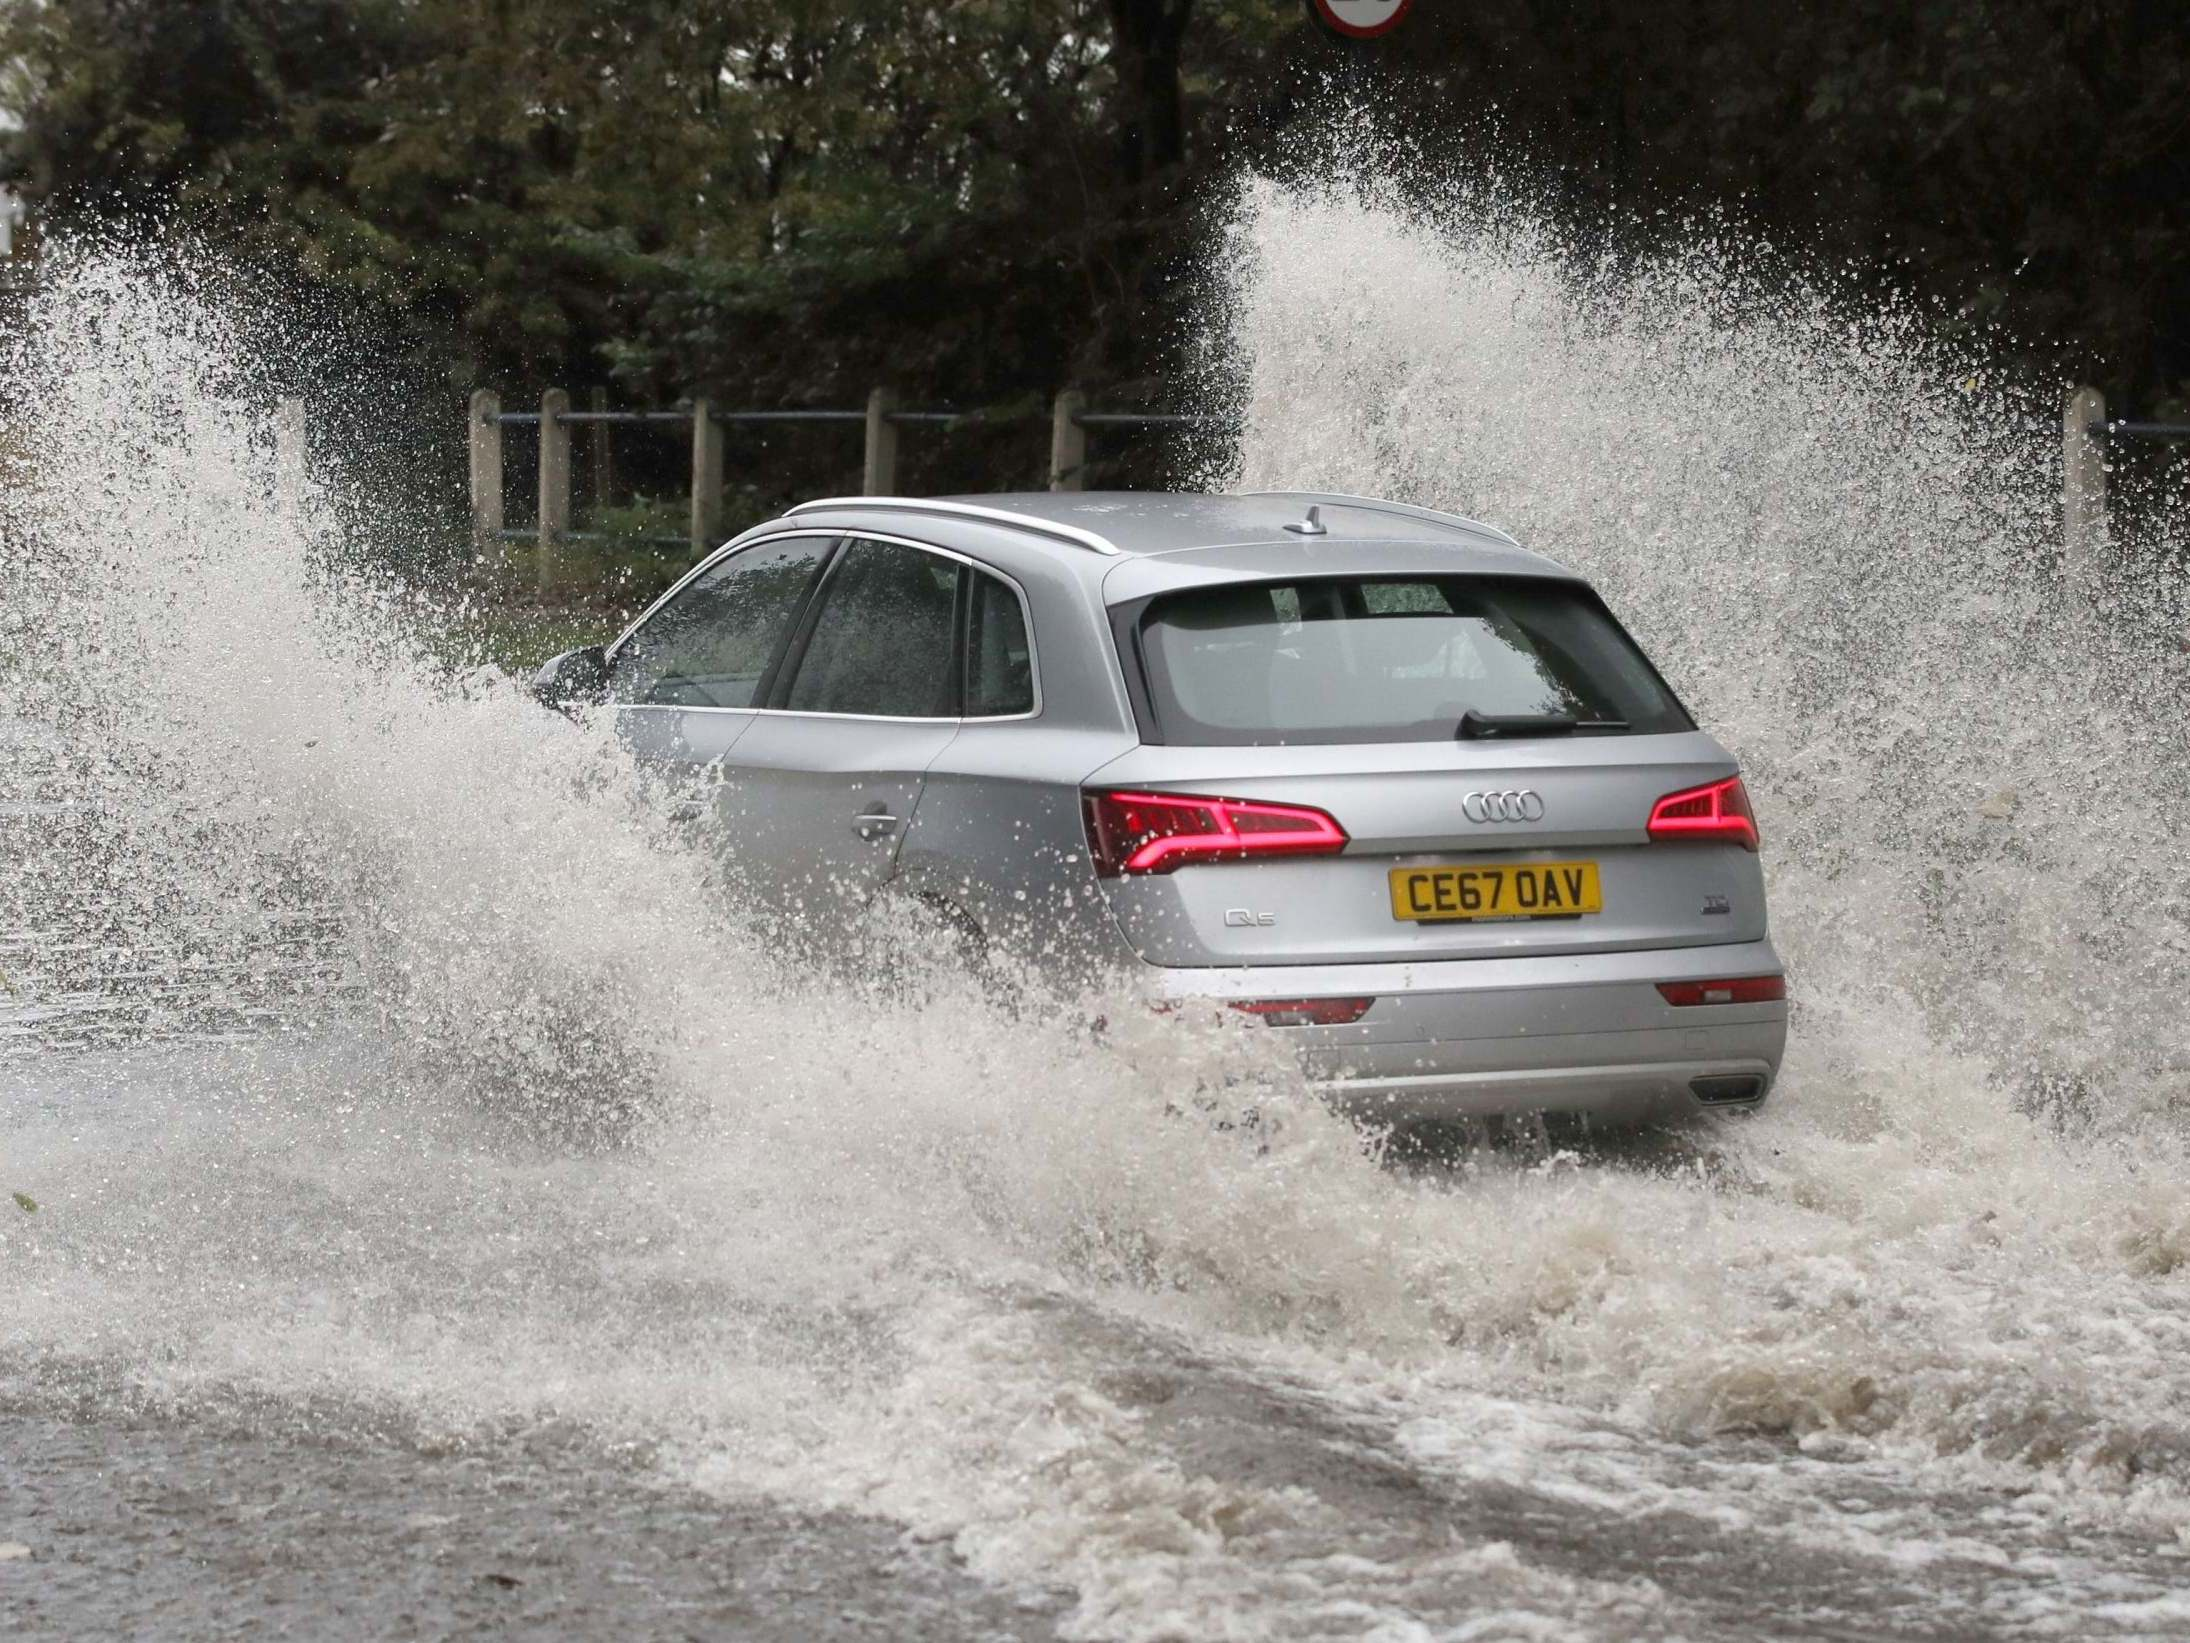 UK weather update: Snow and heavy flooding in some areas with 'danger to life' flood warning in place for this weekend